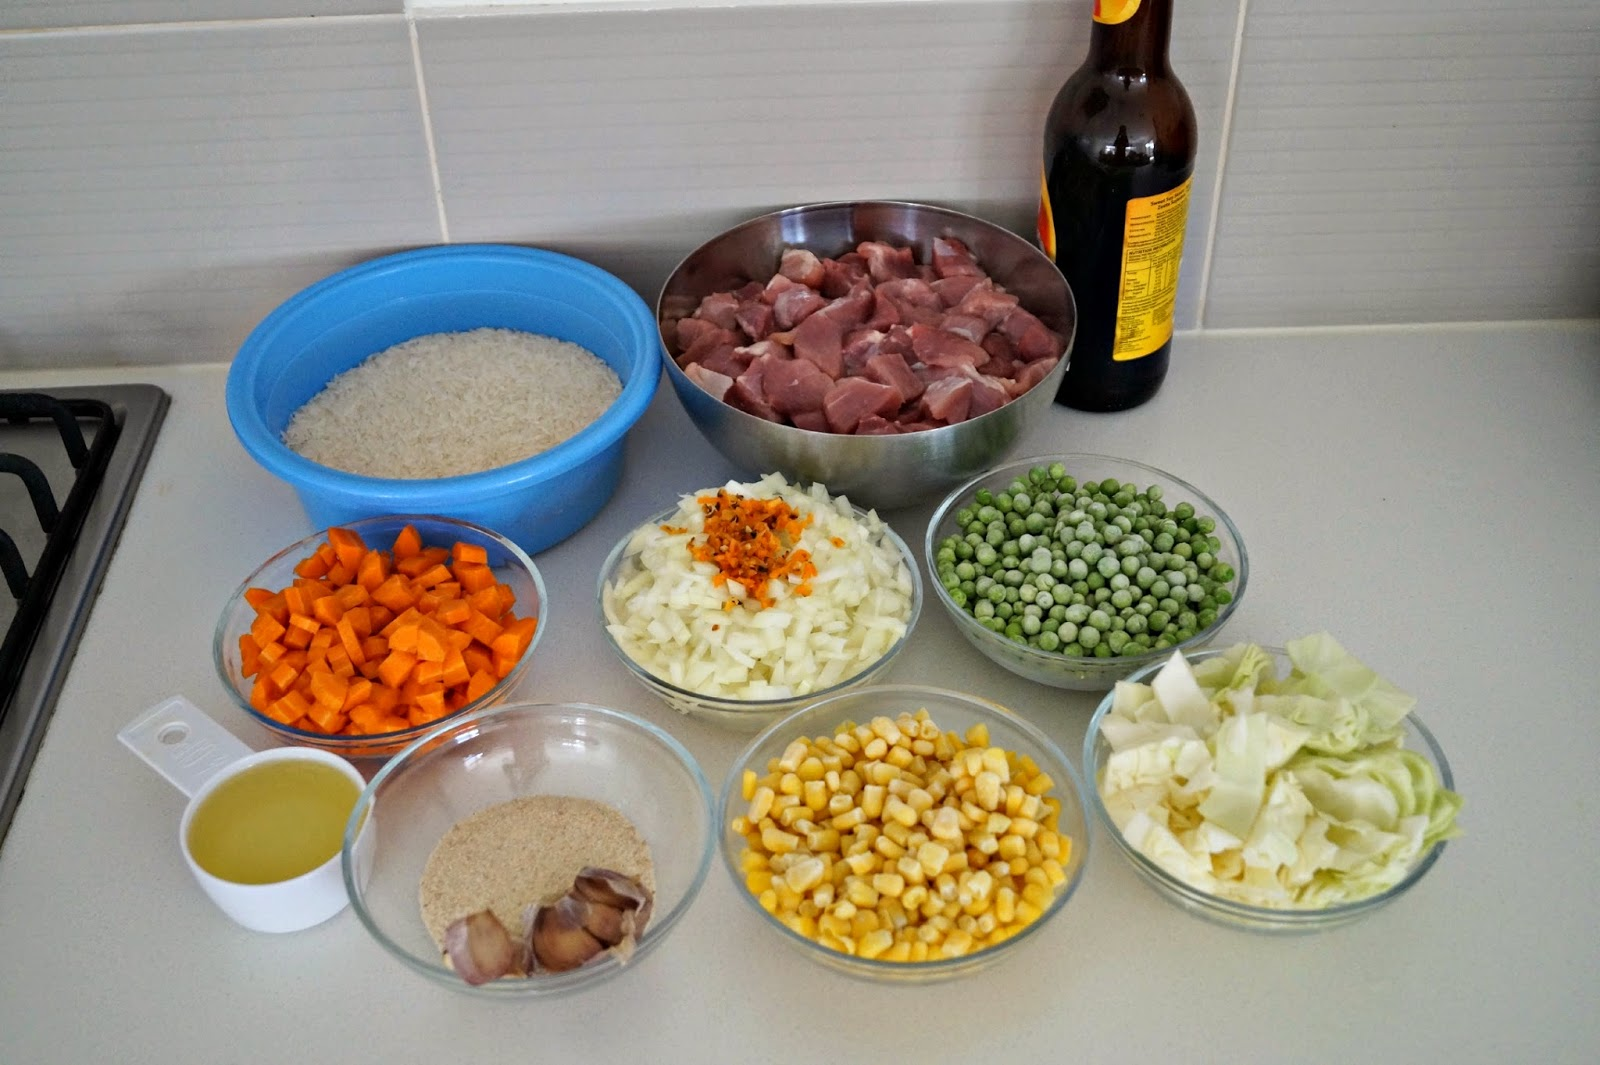 Pork fried rice sierra leonean recipe the cooking wardrobe 1kg pork shoulder butt steak cut into cubes 4 cups rice 2 large carrots chopped 1 large brown onion chopped 12 small cabbage chopped 1 cup frozen ccuart Gallery